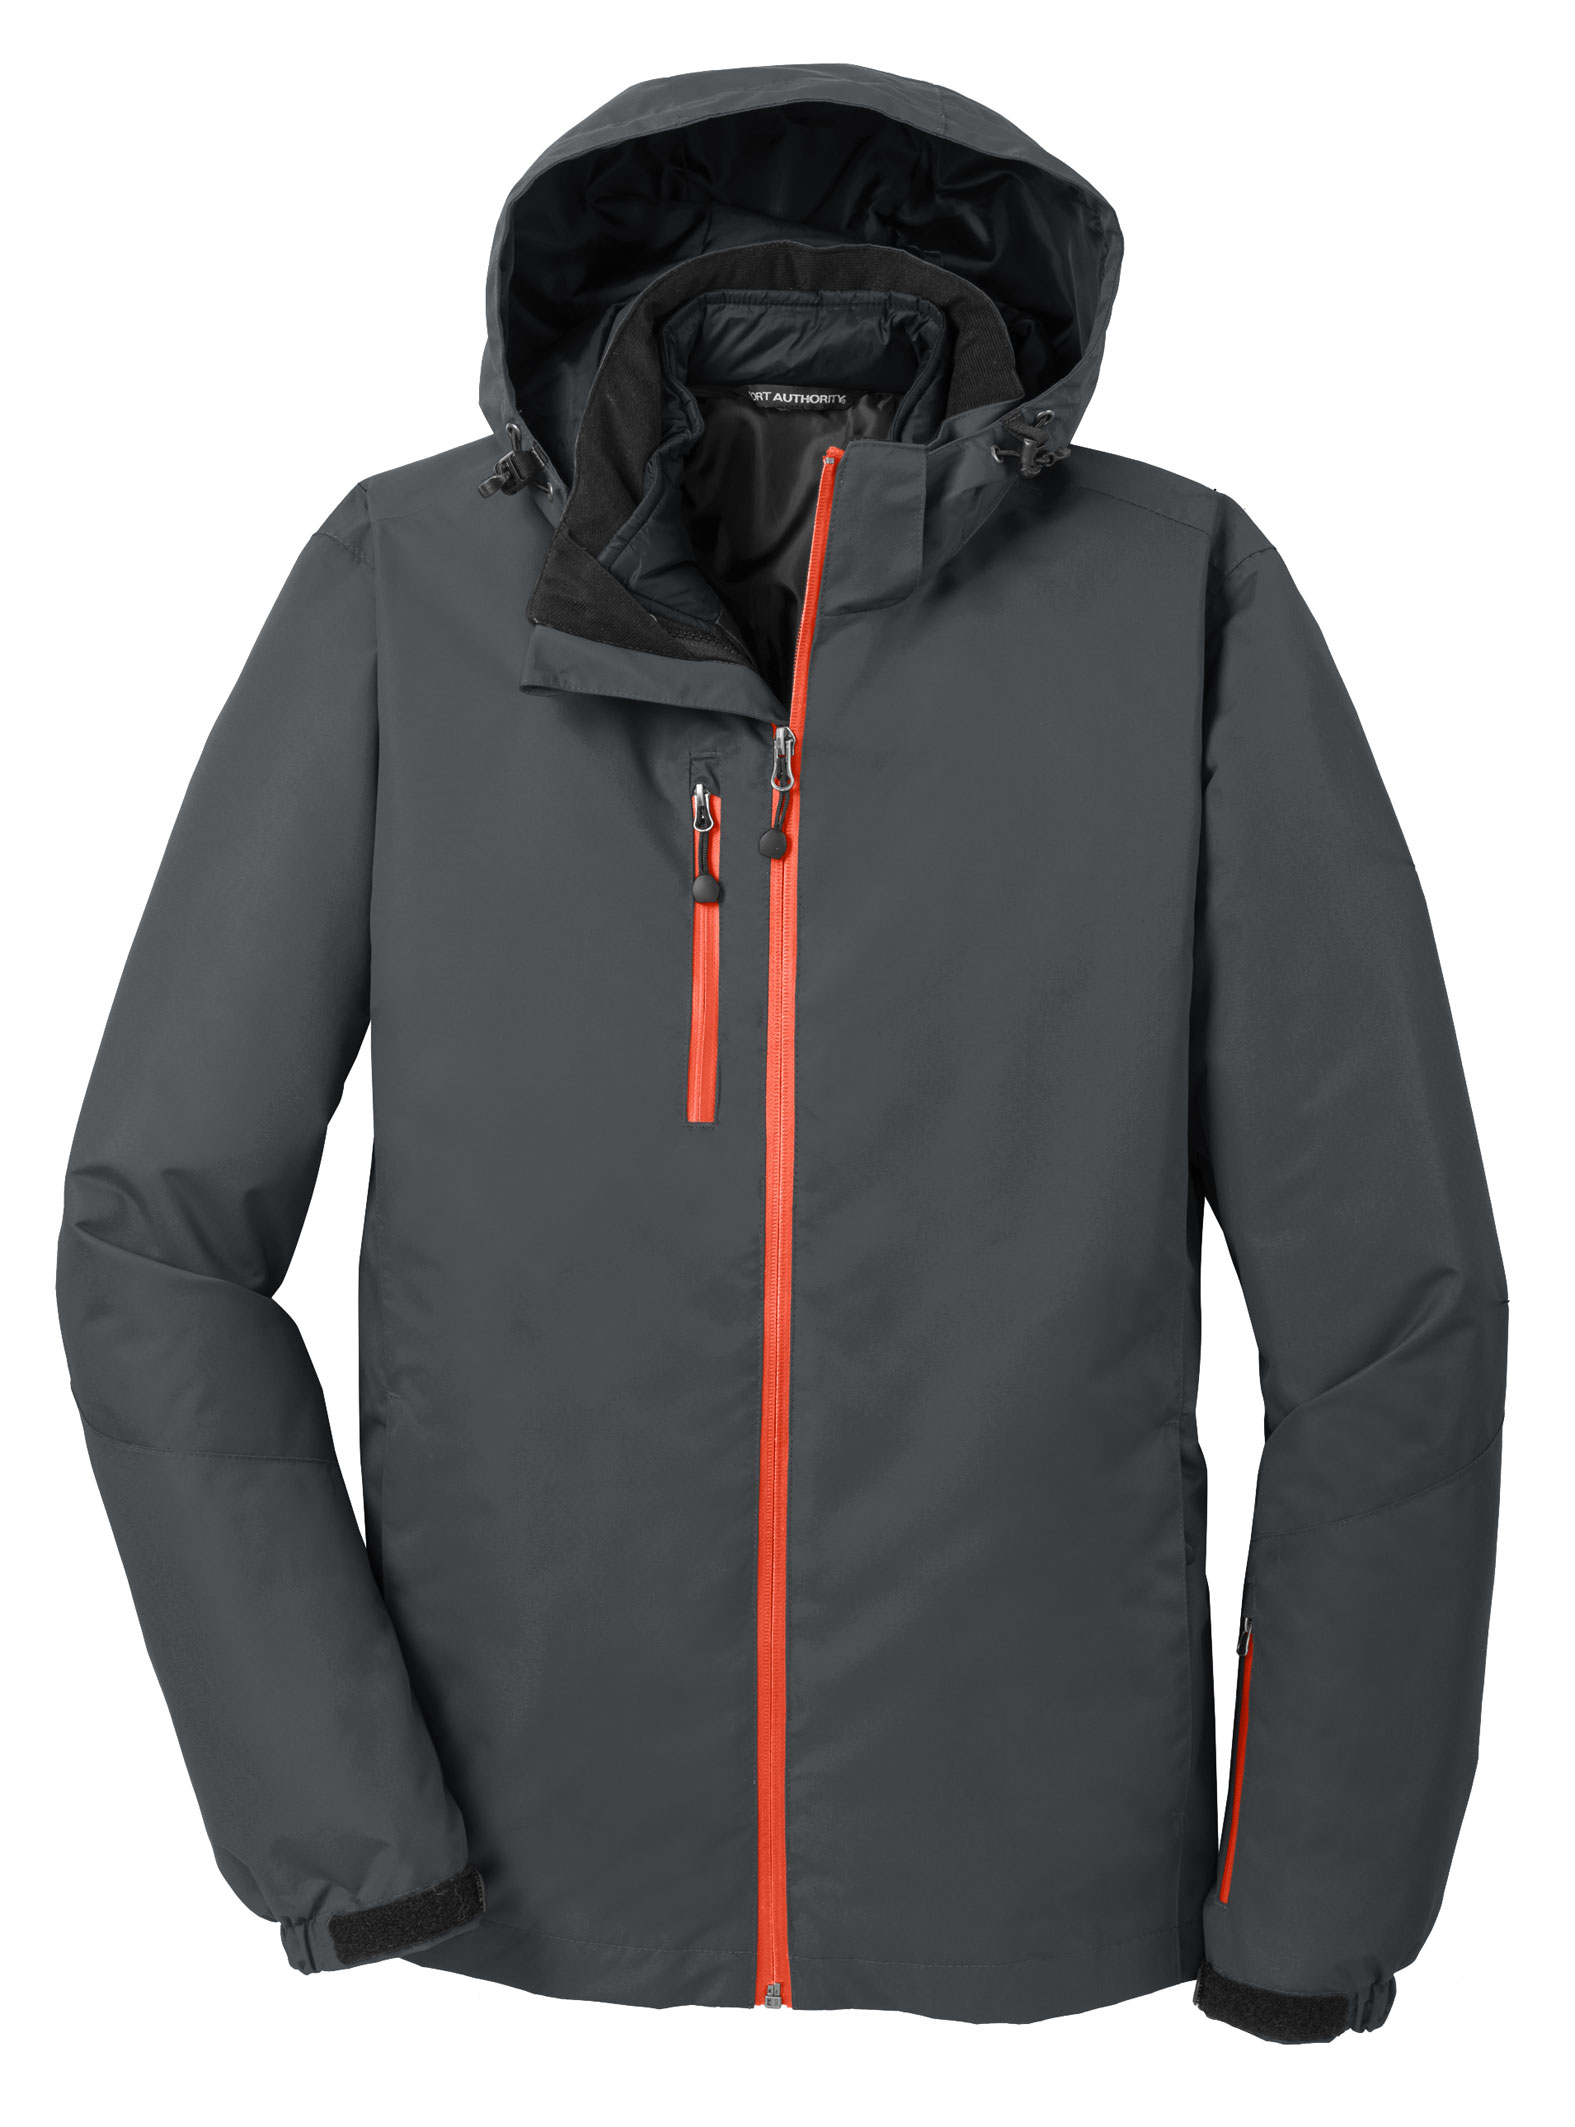 Port Authority Mens Vortex Waterproof 3-in-1 Jacket